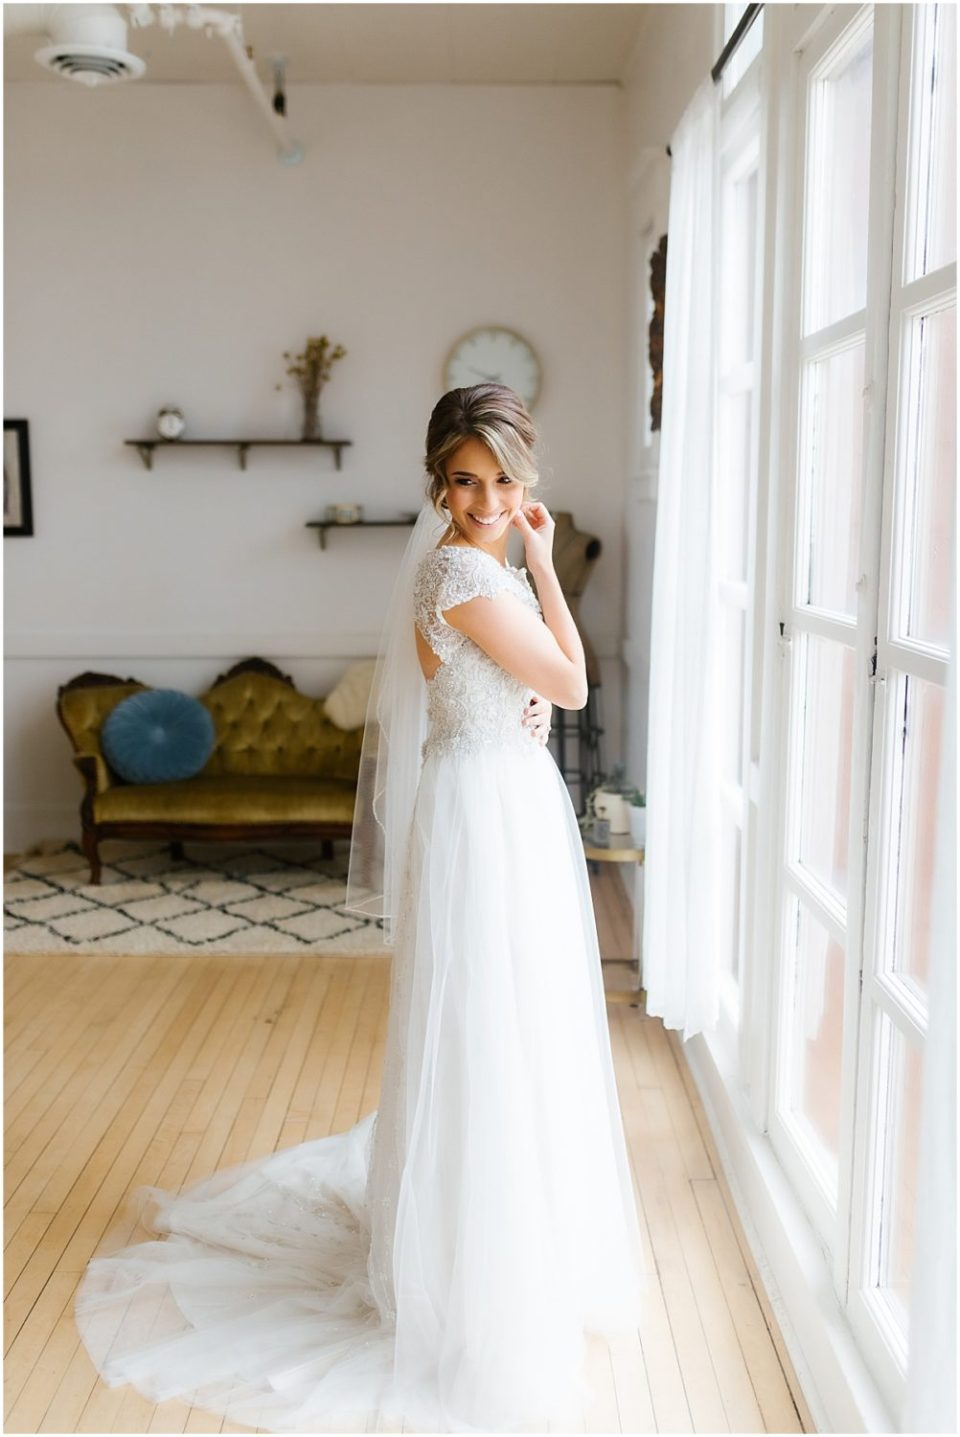 Elegant Capitol Room Wedding by Cameron and Tia Photography bridal suite